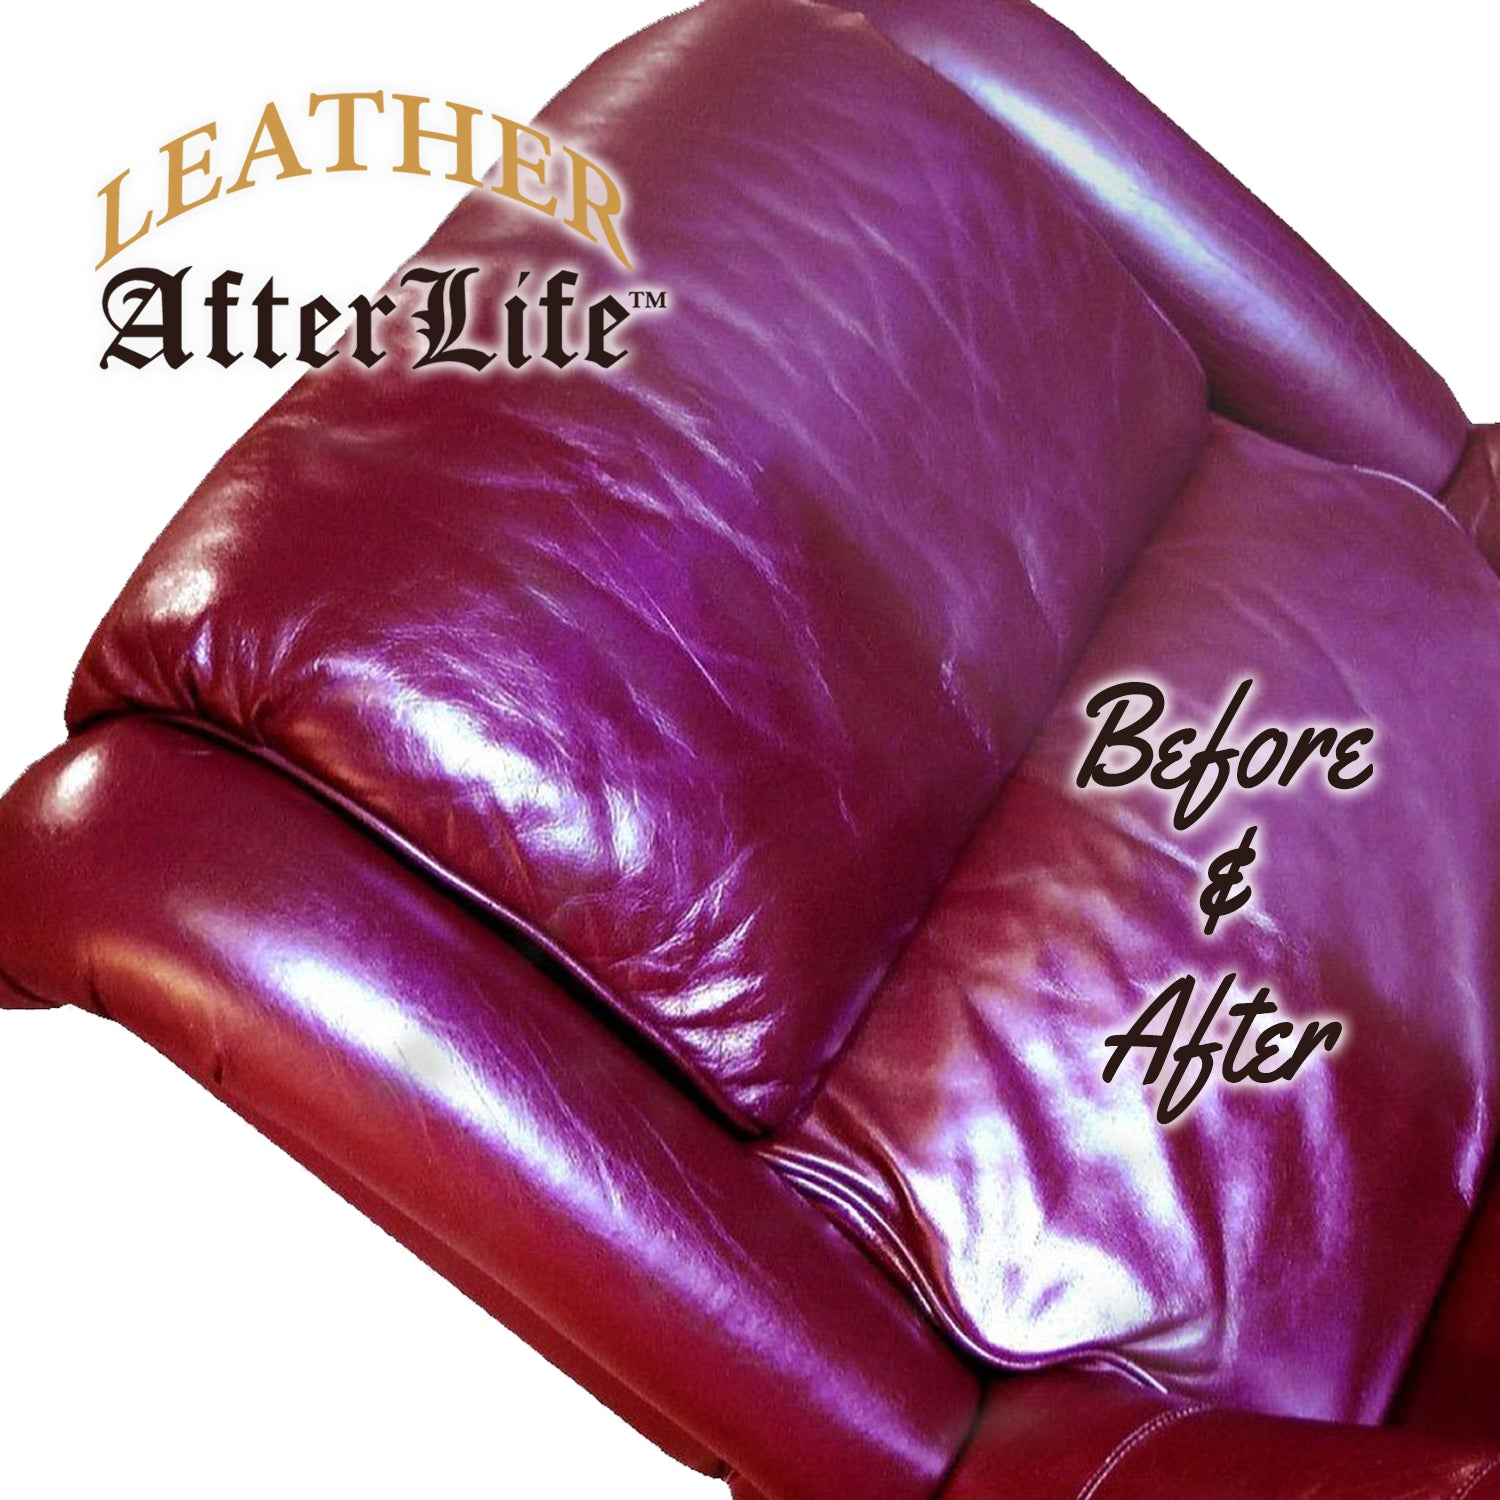 Sensational Leather Afterlife Leather Conditioner Restorer The Best Leather Protectant Cars Furniture Seats Shoes Couch Boots Saddles Purses More Gmtry Best Dining Table And Chair Ideas Images Gmtryco